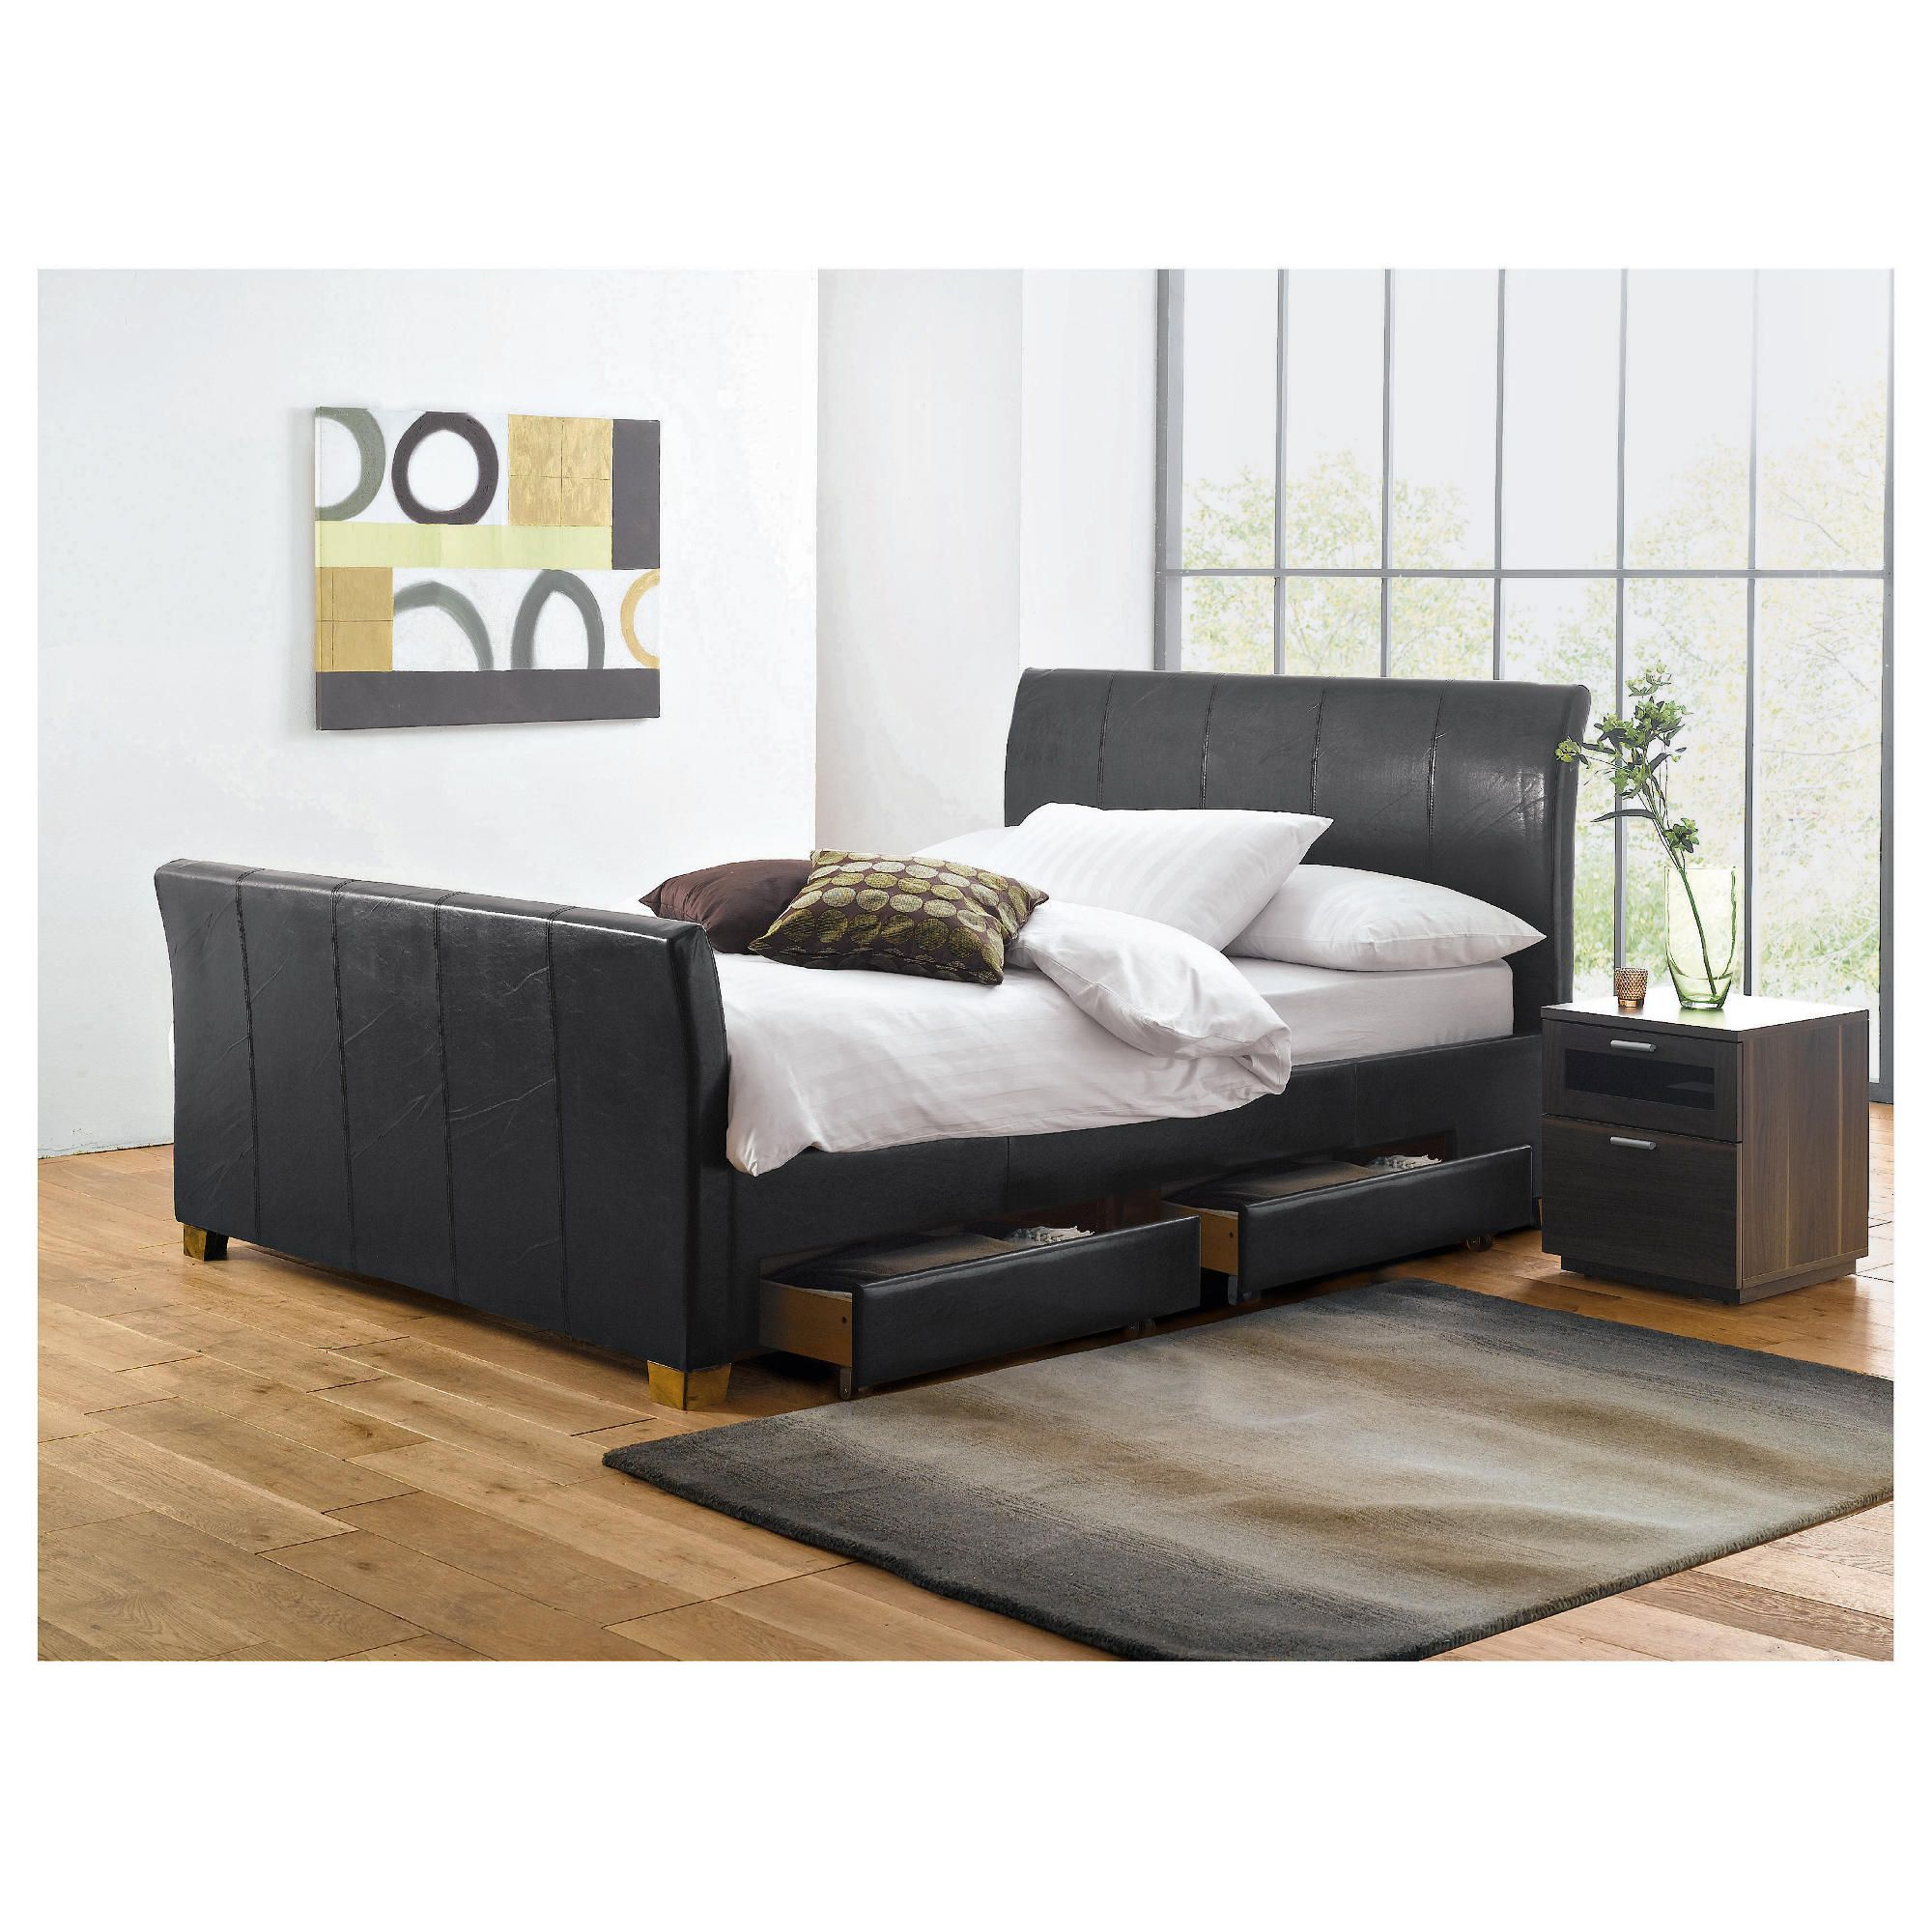 Rayne King Faux Leather Bed Frame with 4 Drawers, Black at Tesco Direct